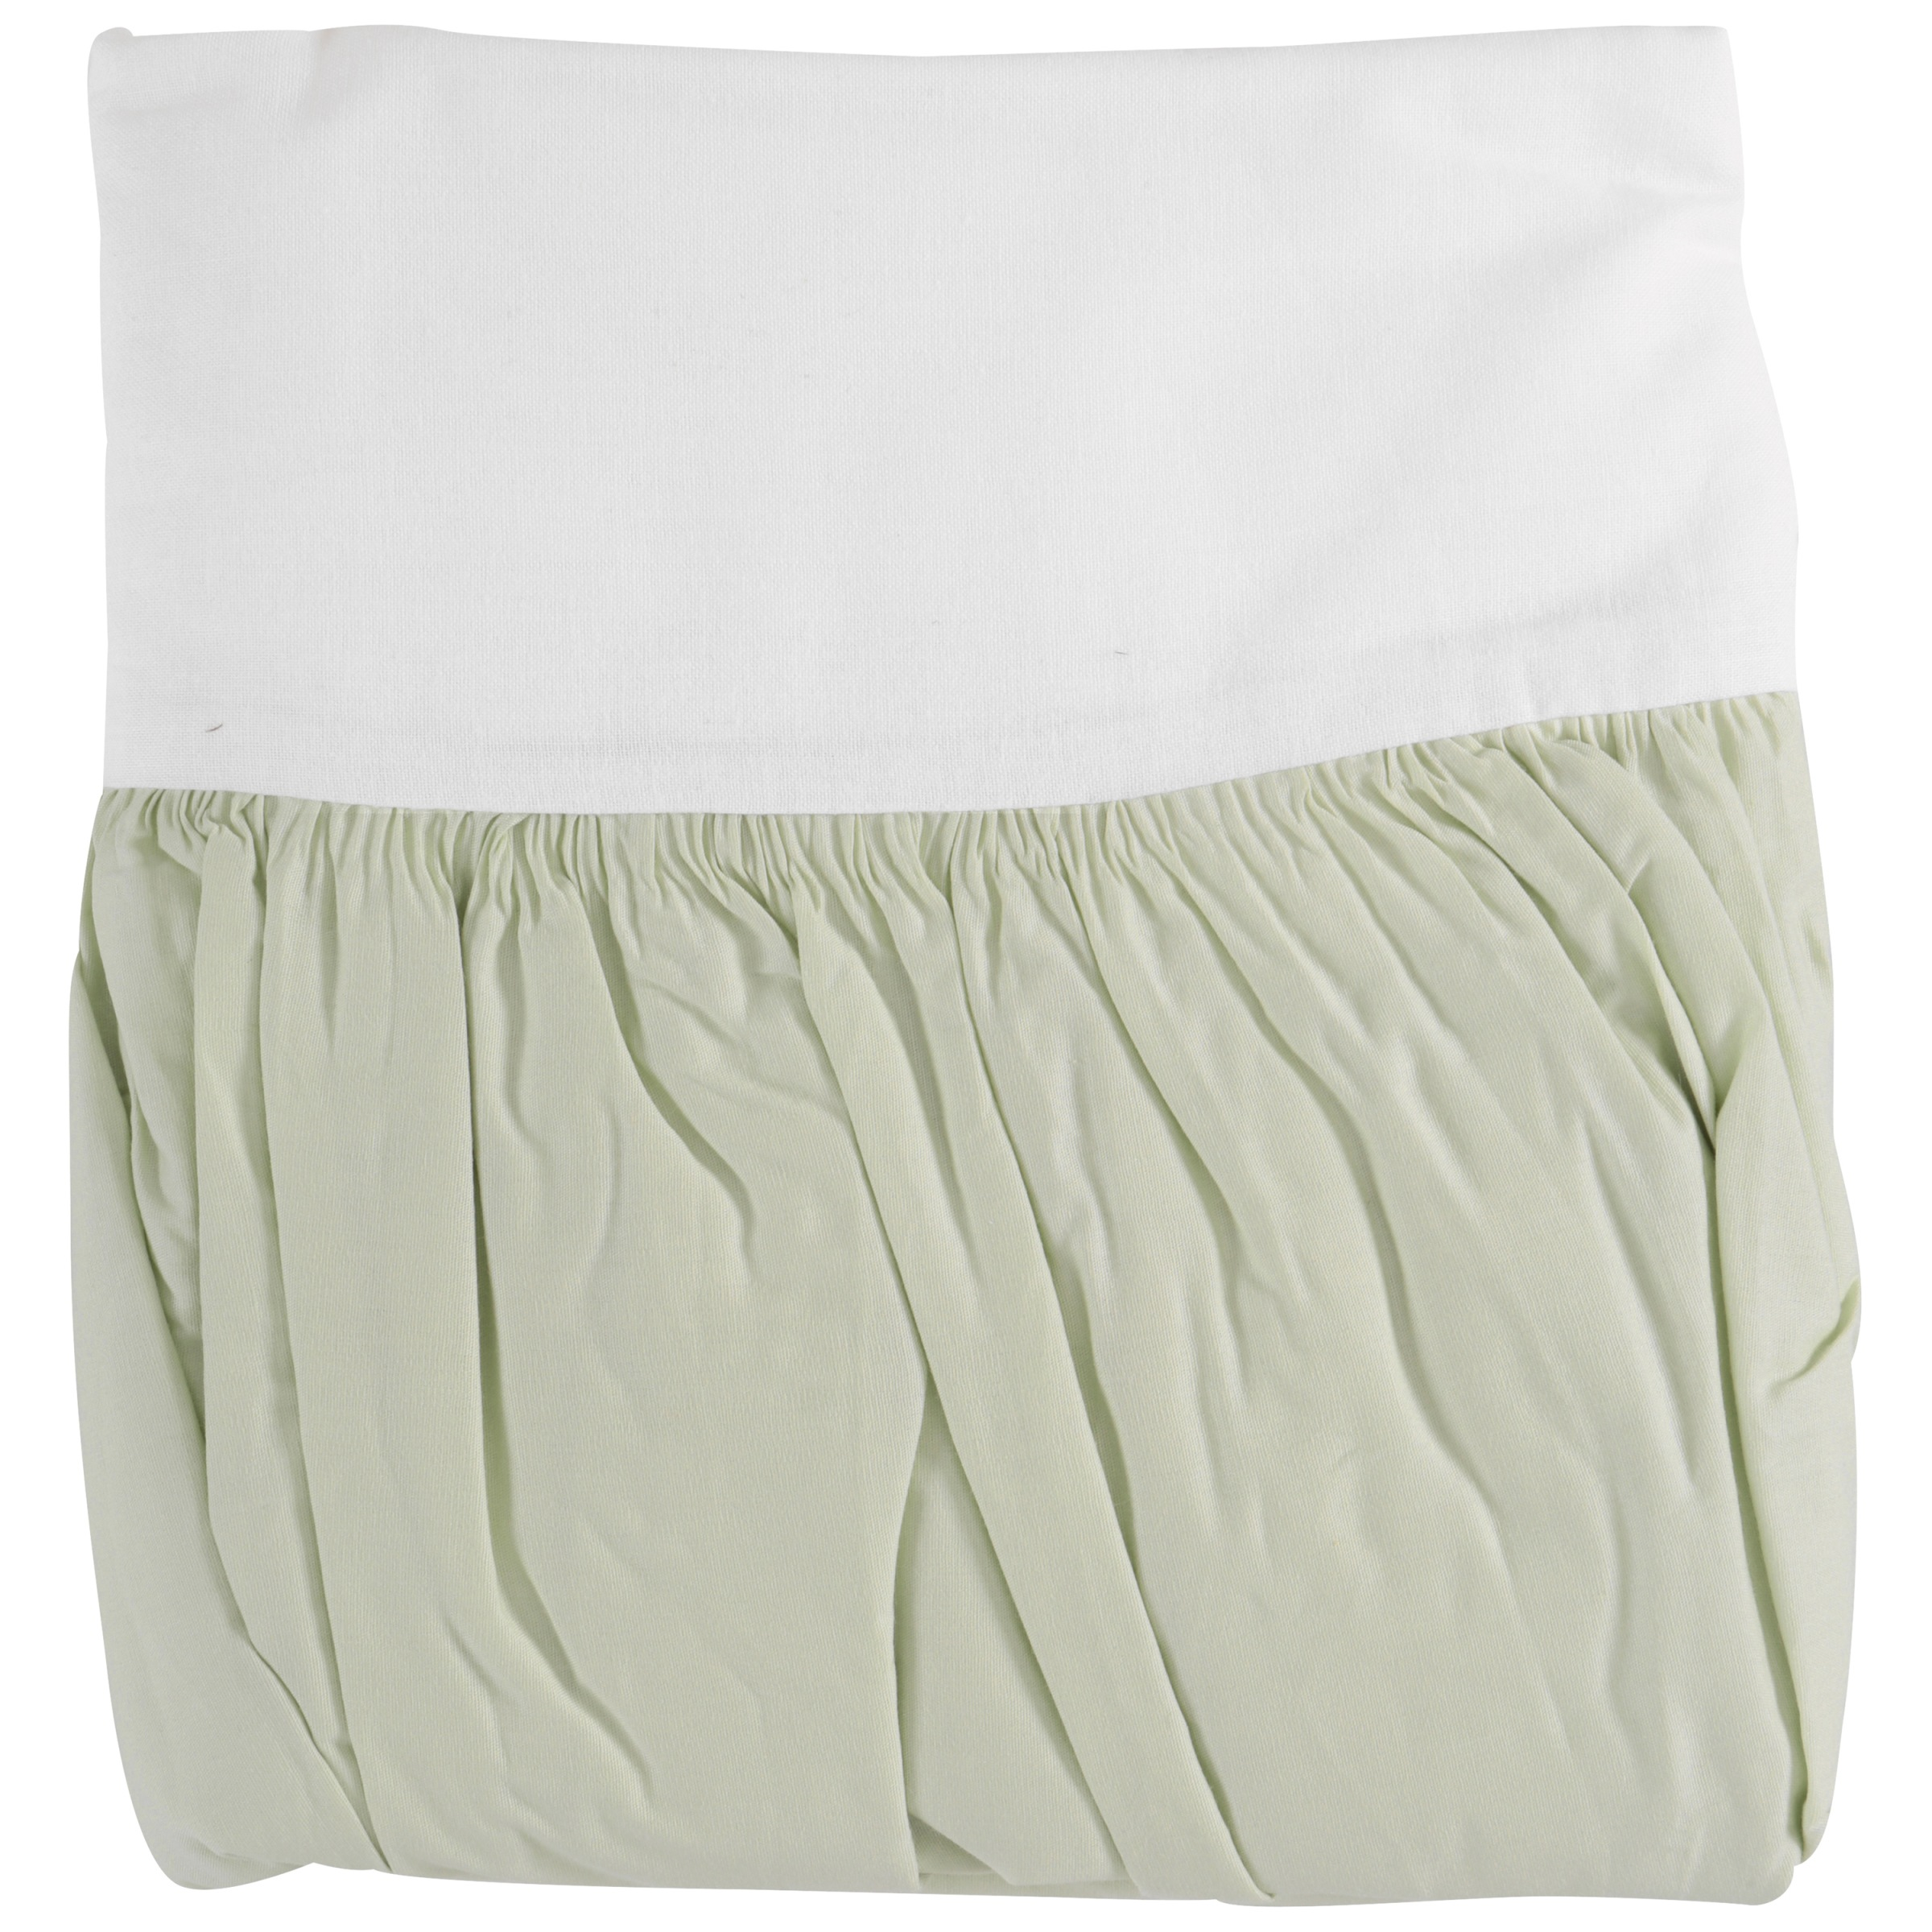 TL Care® 100% Cotton Percale Light Green Crib Bed Skirt Pack